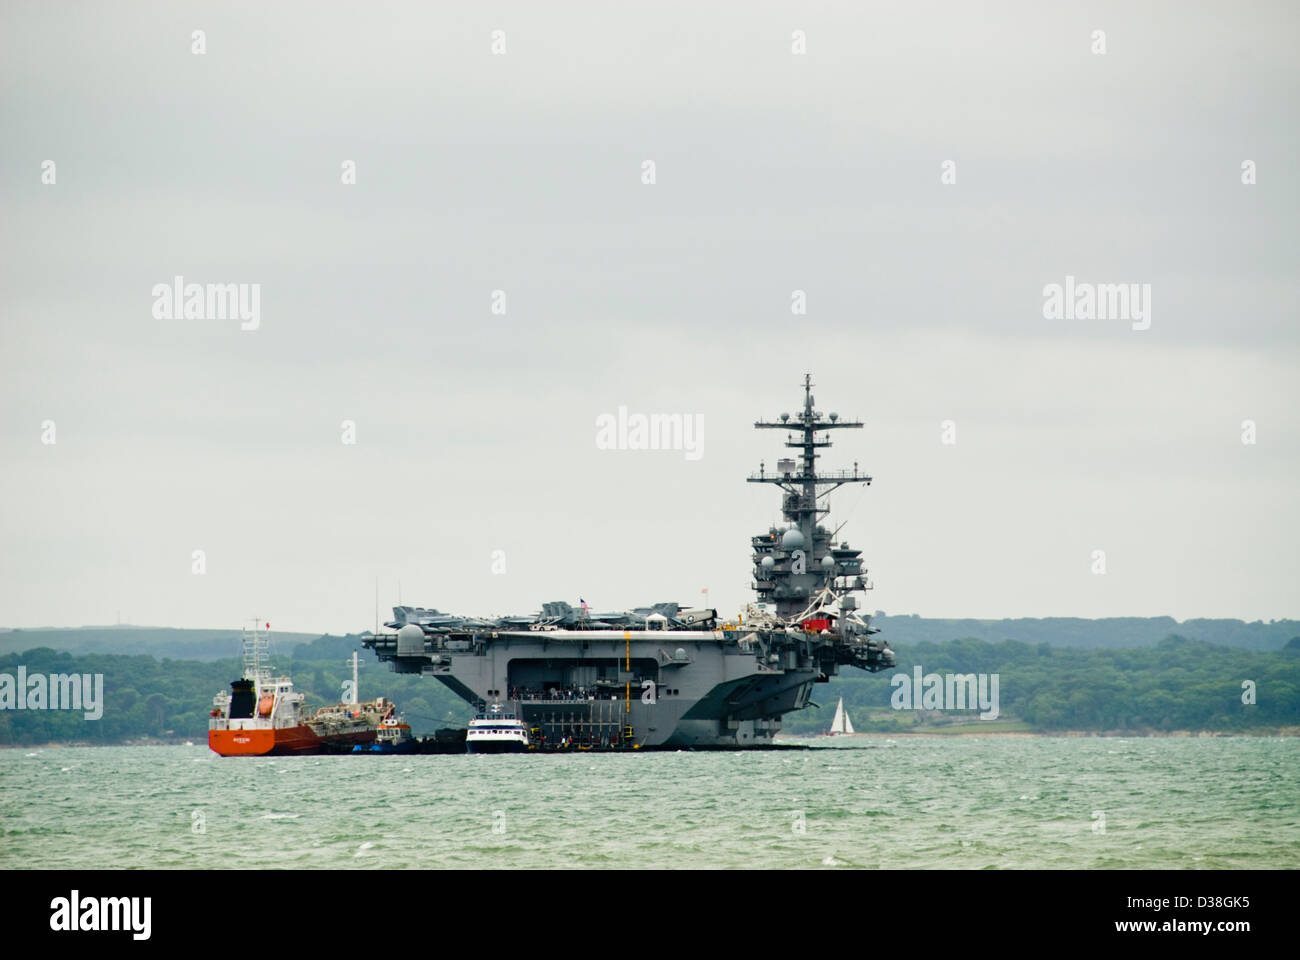 USS George HW Bush aircraft carrier anchored in the Solent off the Isle of Wight - Stock Image